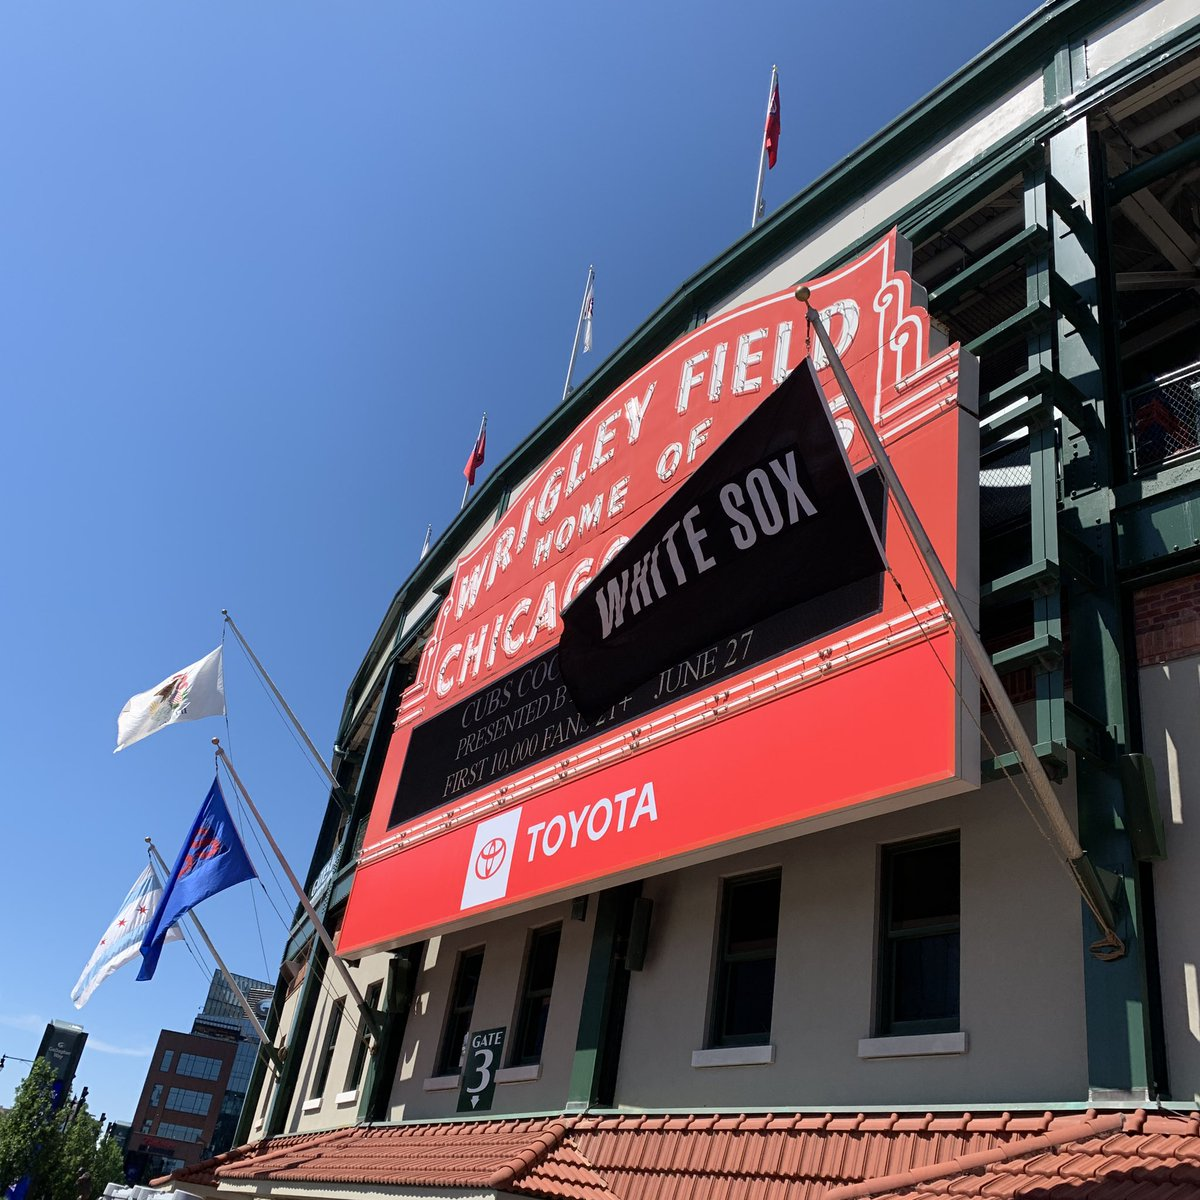 """""""Wrigley Field Home of the Chicago White Sox"""" <br>http://pic.twitter.com/64nvUyozHg"""